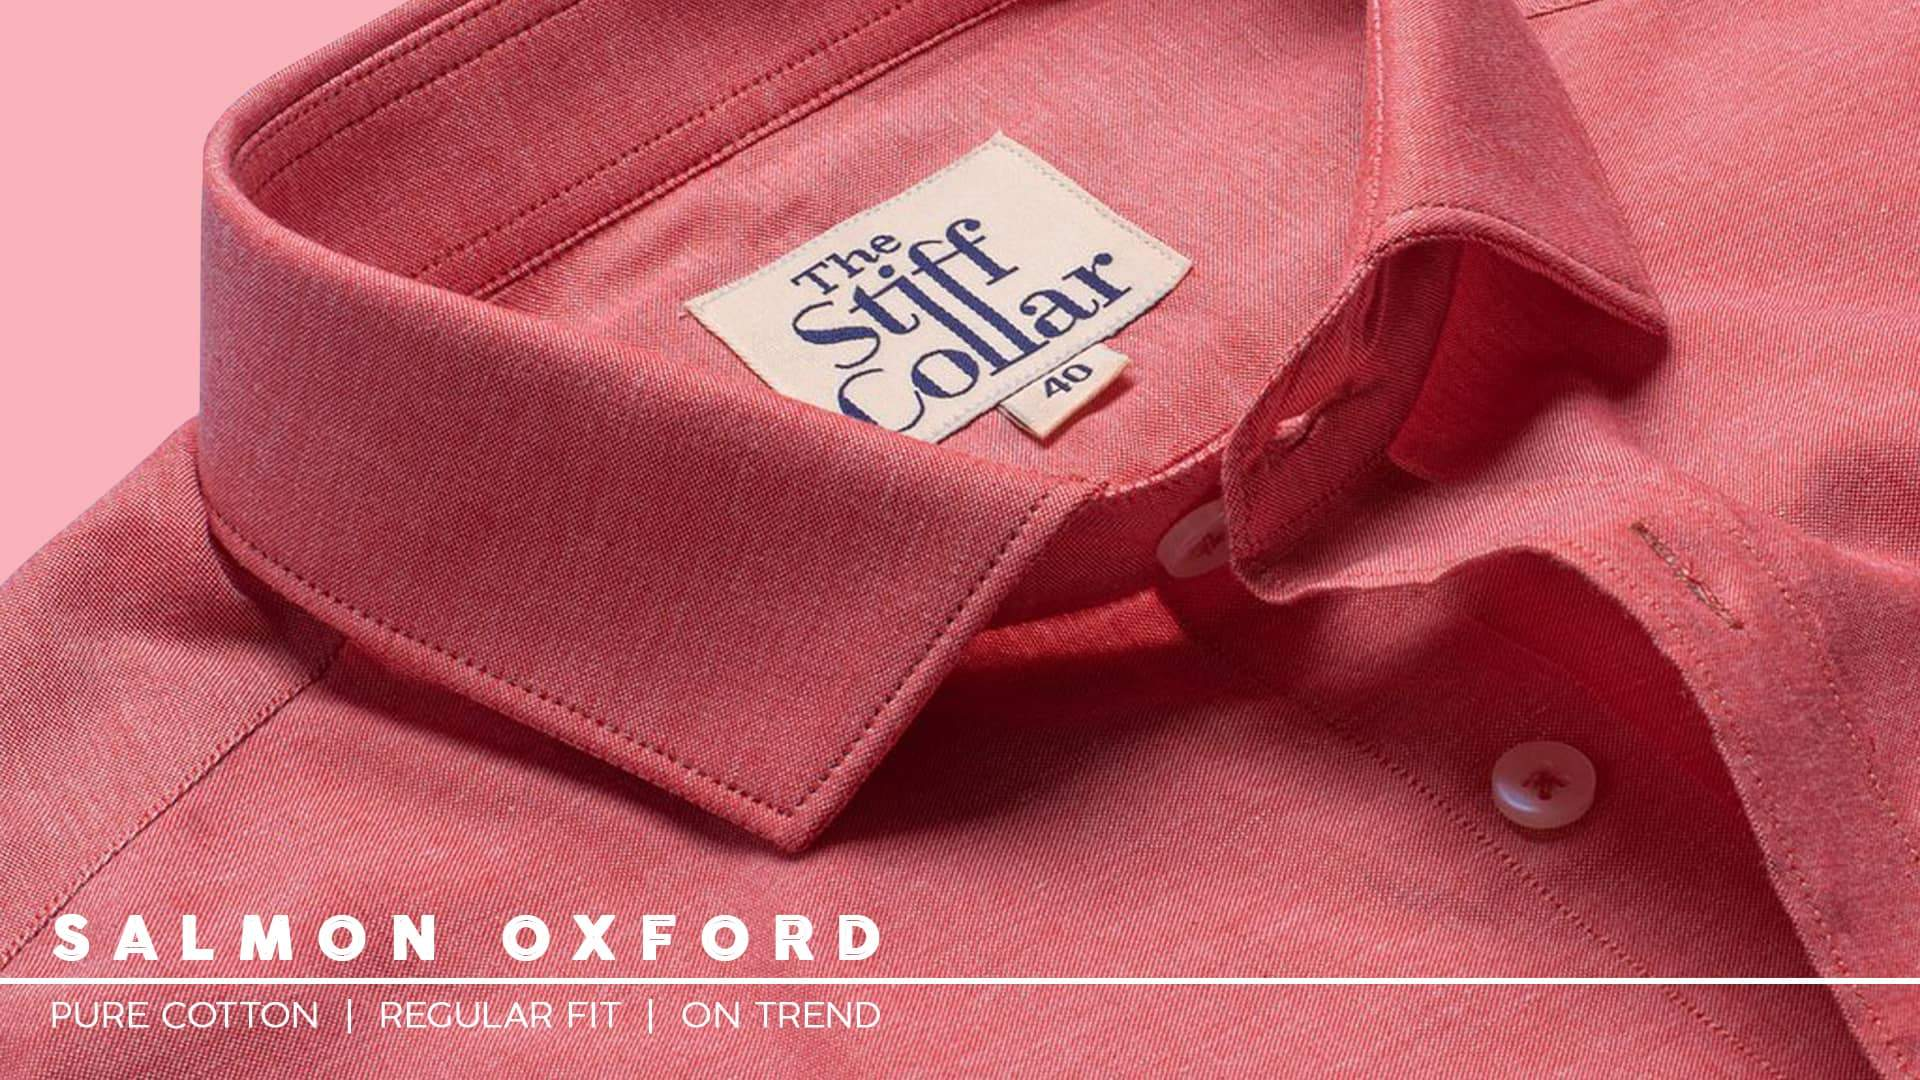 india shirts for men in india